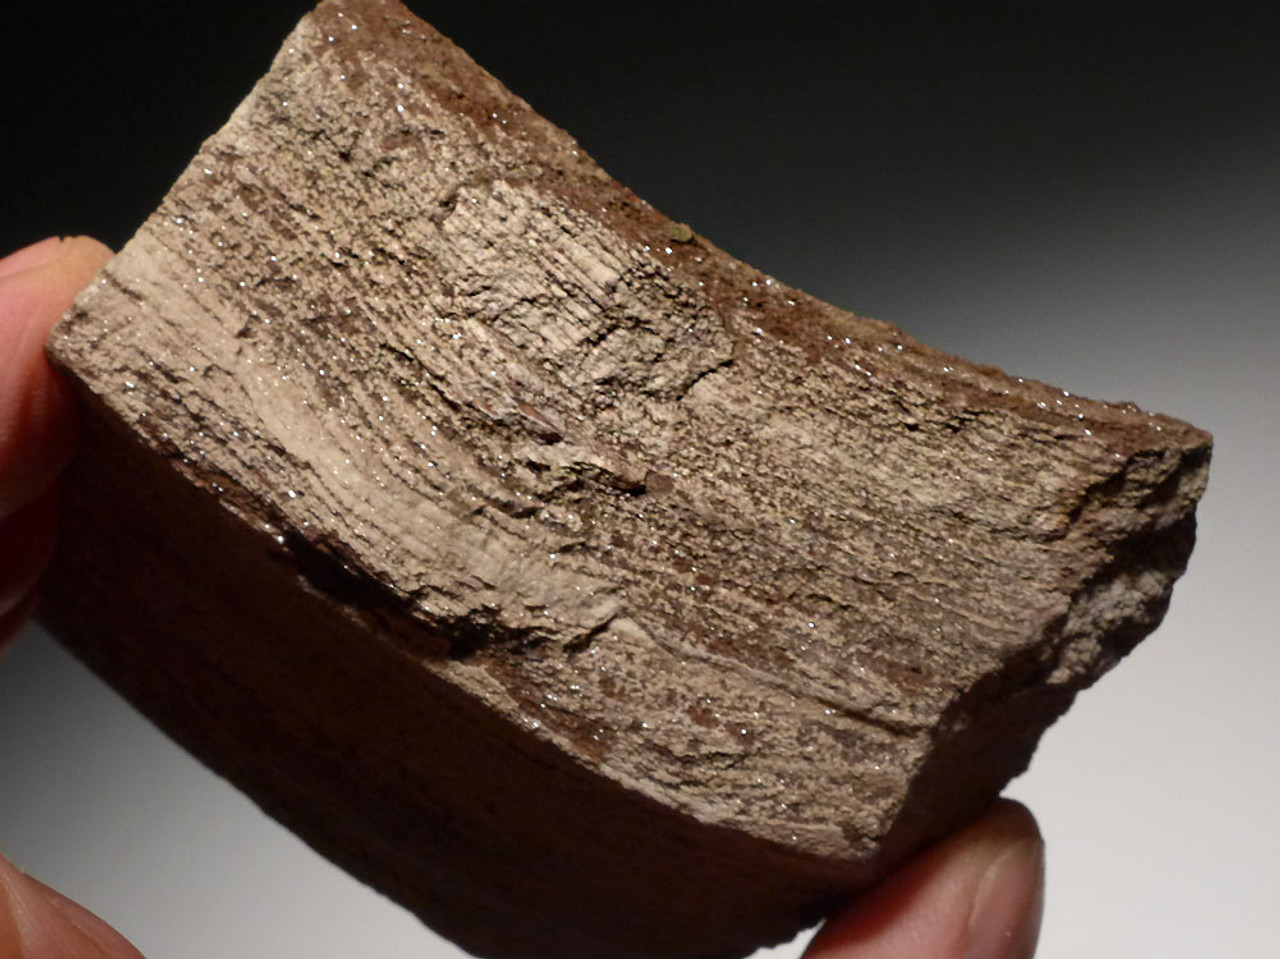 PL114 - RARE TRIASSIC PERMINERALIZED FOSSIL WOOD WITH SPARKLING DRUSY CRYSTALS FROM GERMANY